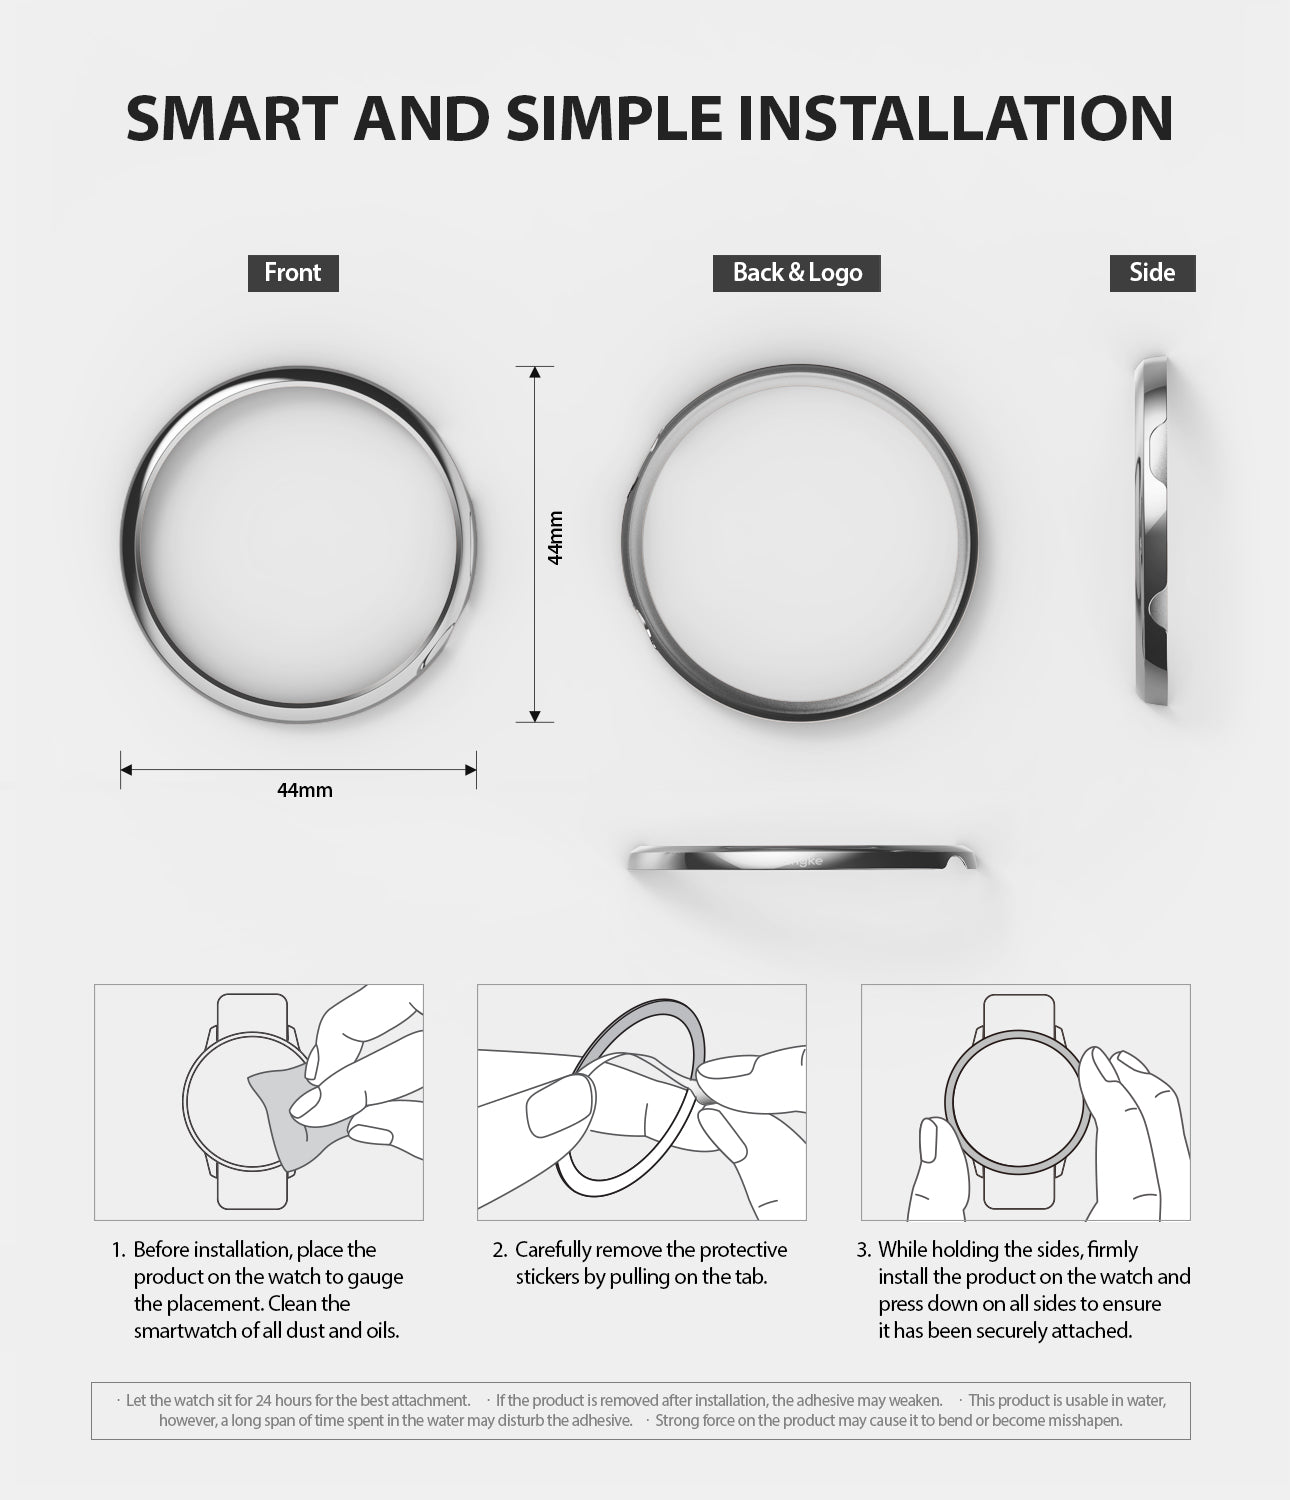 ringke bezel styling for galaxy watch active 2 44mm stainless steel smart and simple installation guide using strong 3m adhesive